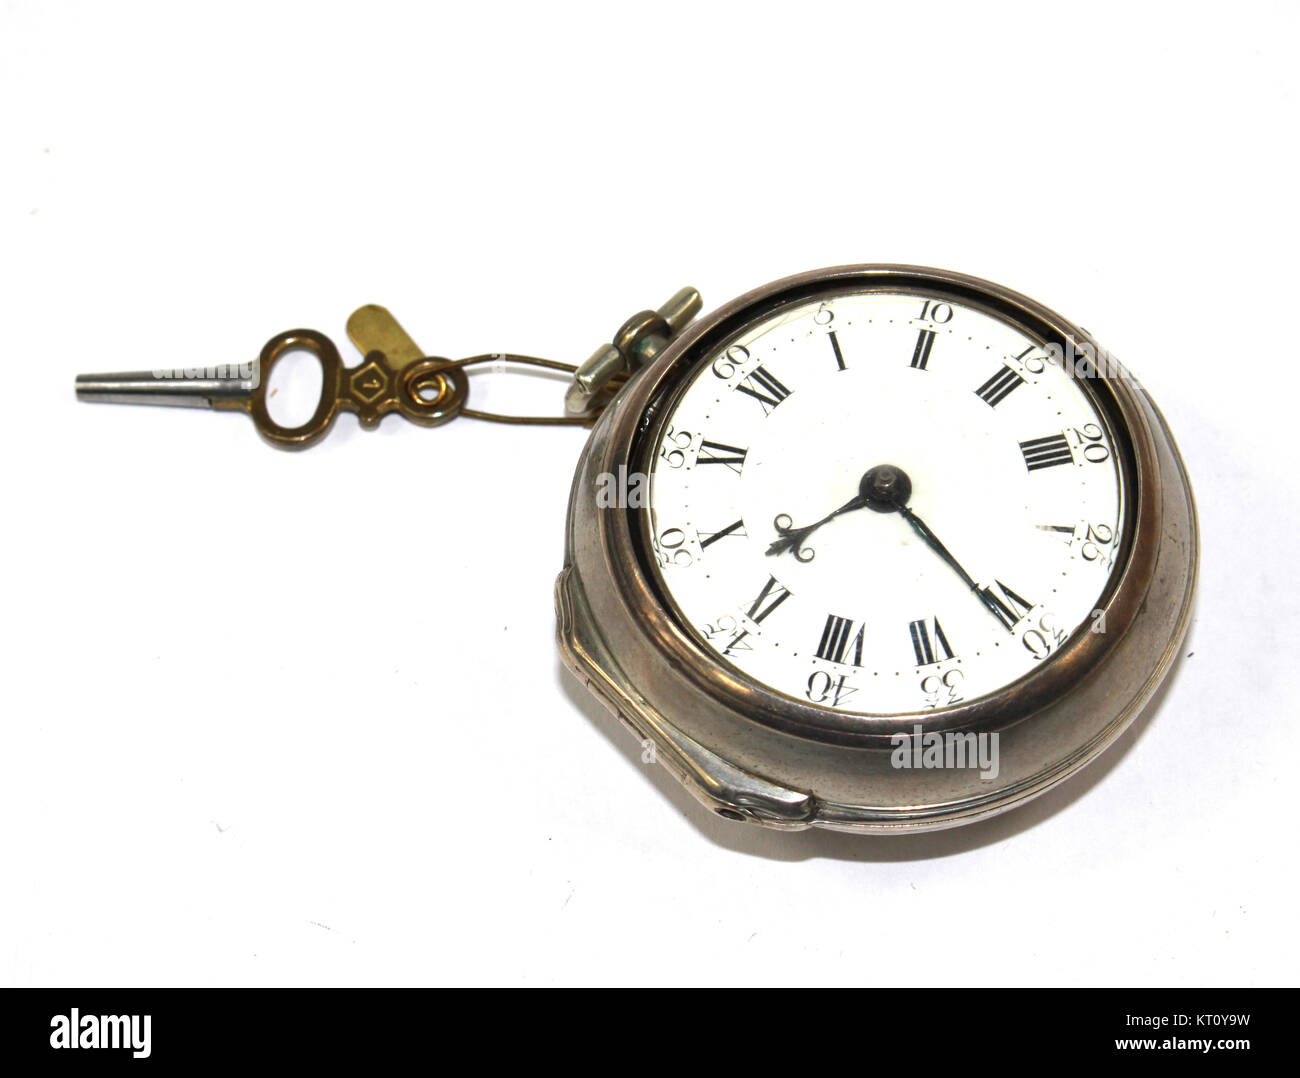 Vintage Timepiece Clock on White Background - Stock Image